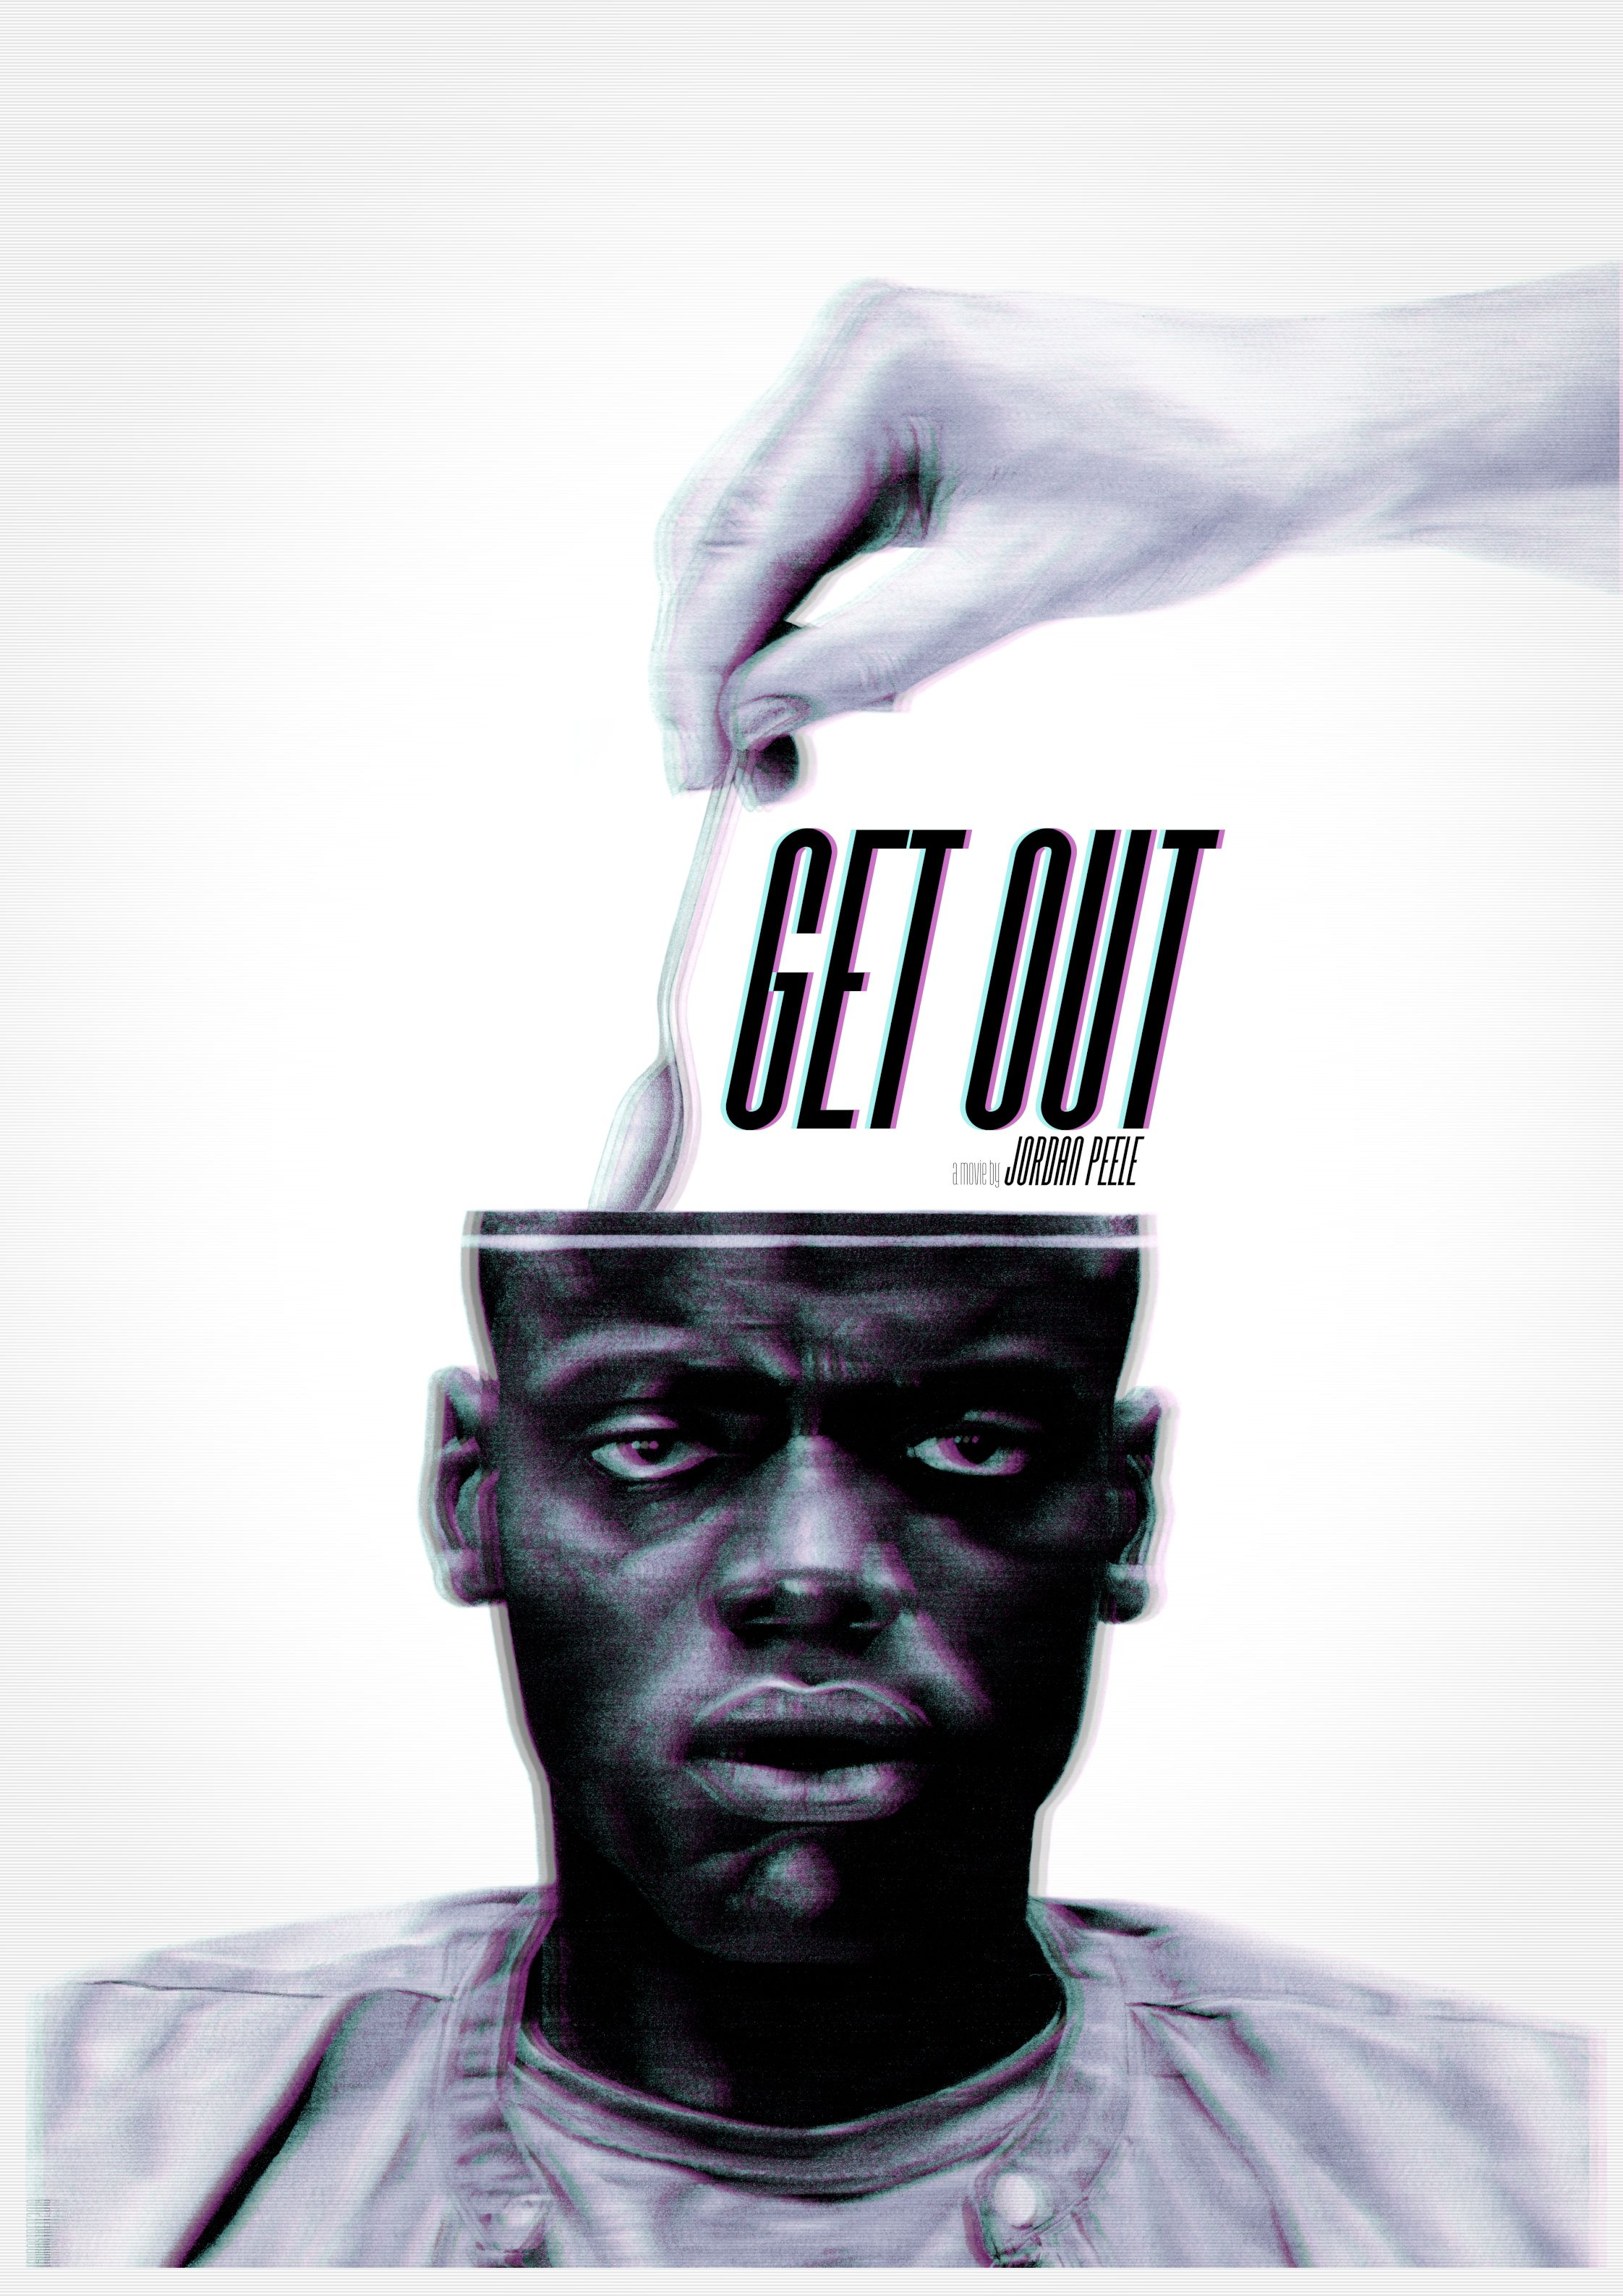 Out get